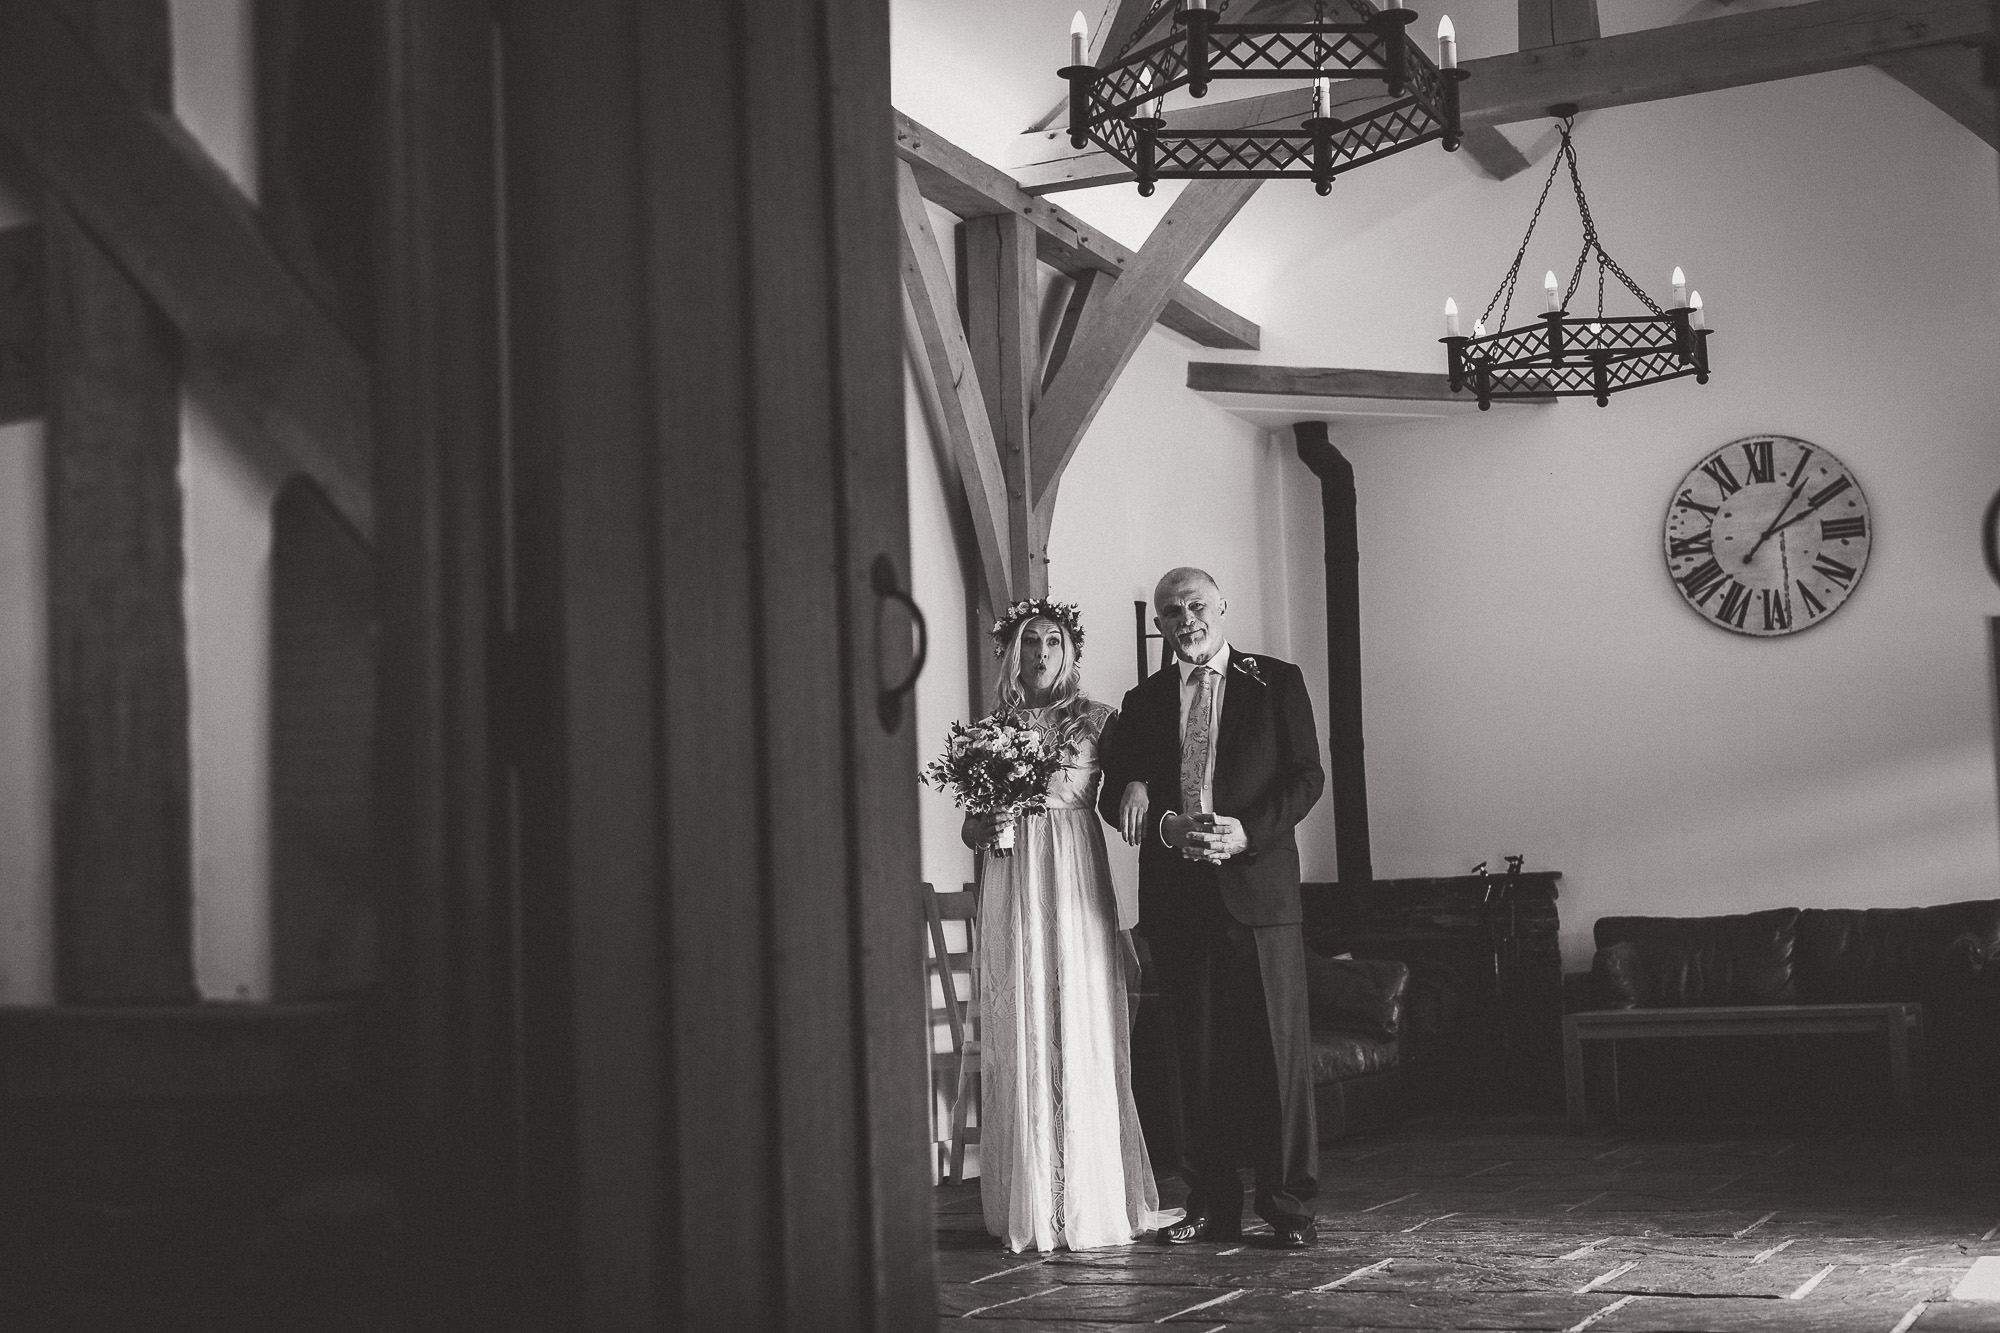 Gate Street Barn Wedding Photography | Nikki & Rich Gate Street Barn Wedding Photyography 009